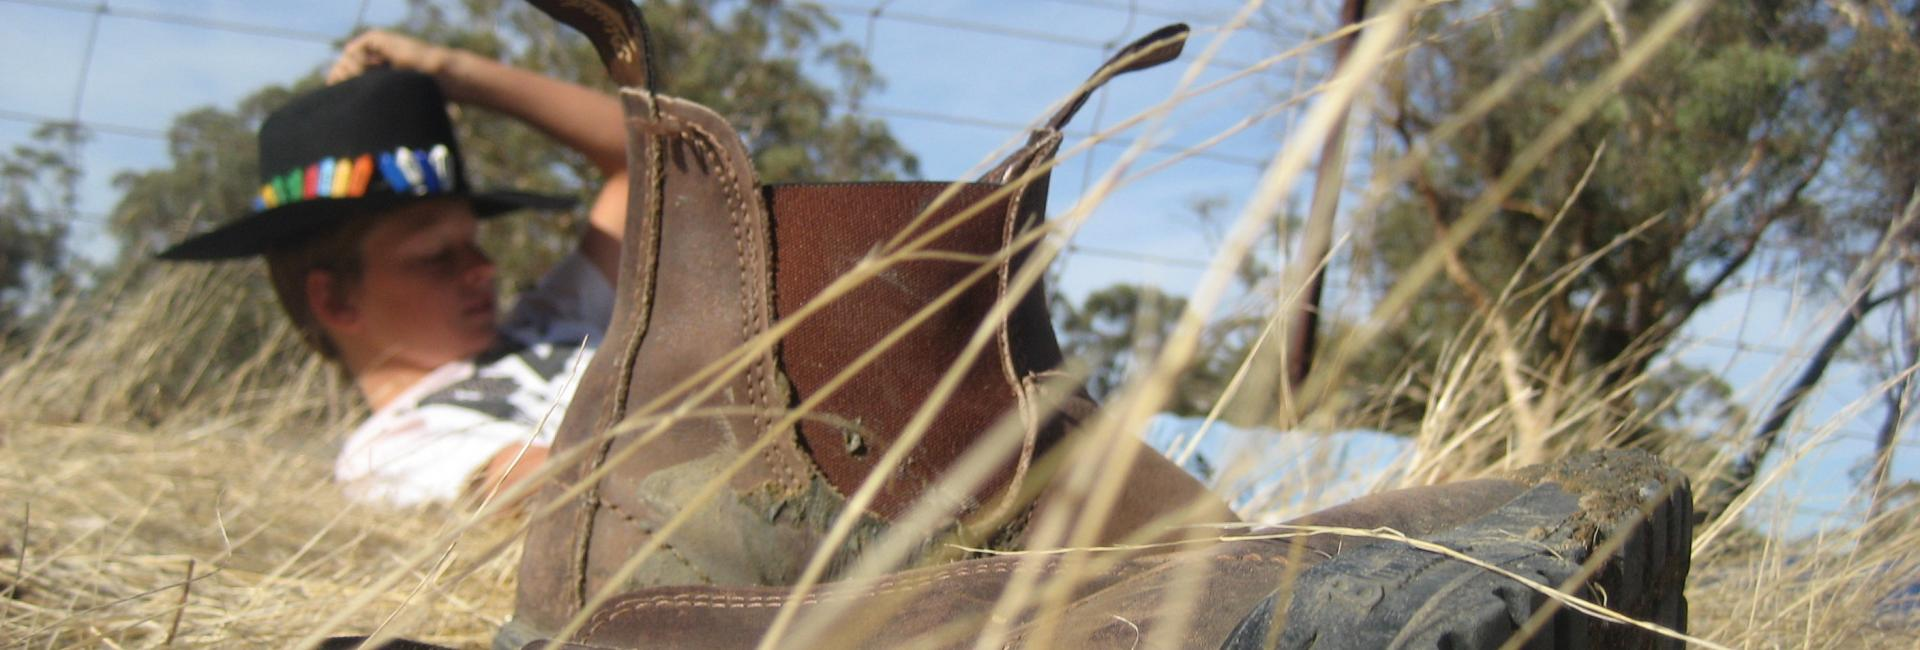 Quairading, Western Australia, Country Life – farm boots and country hat